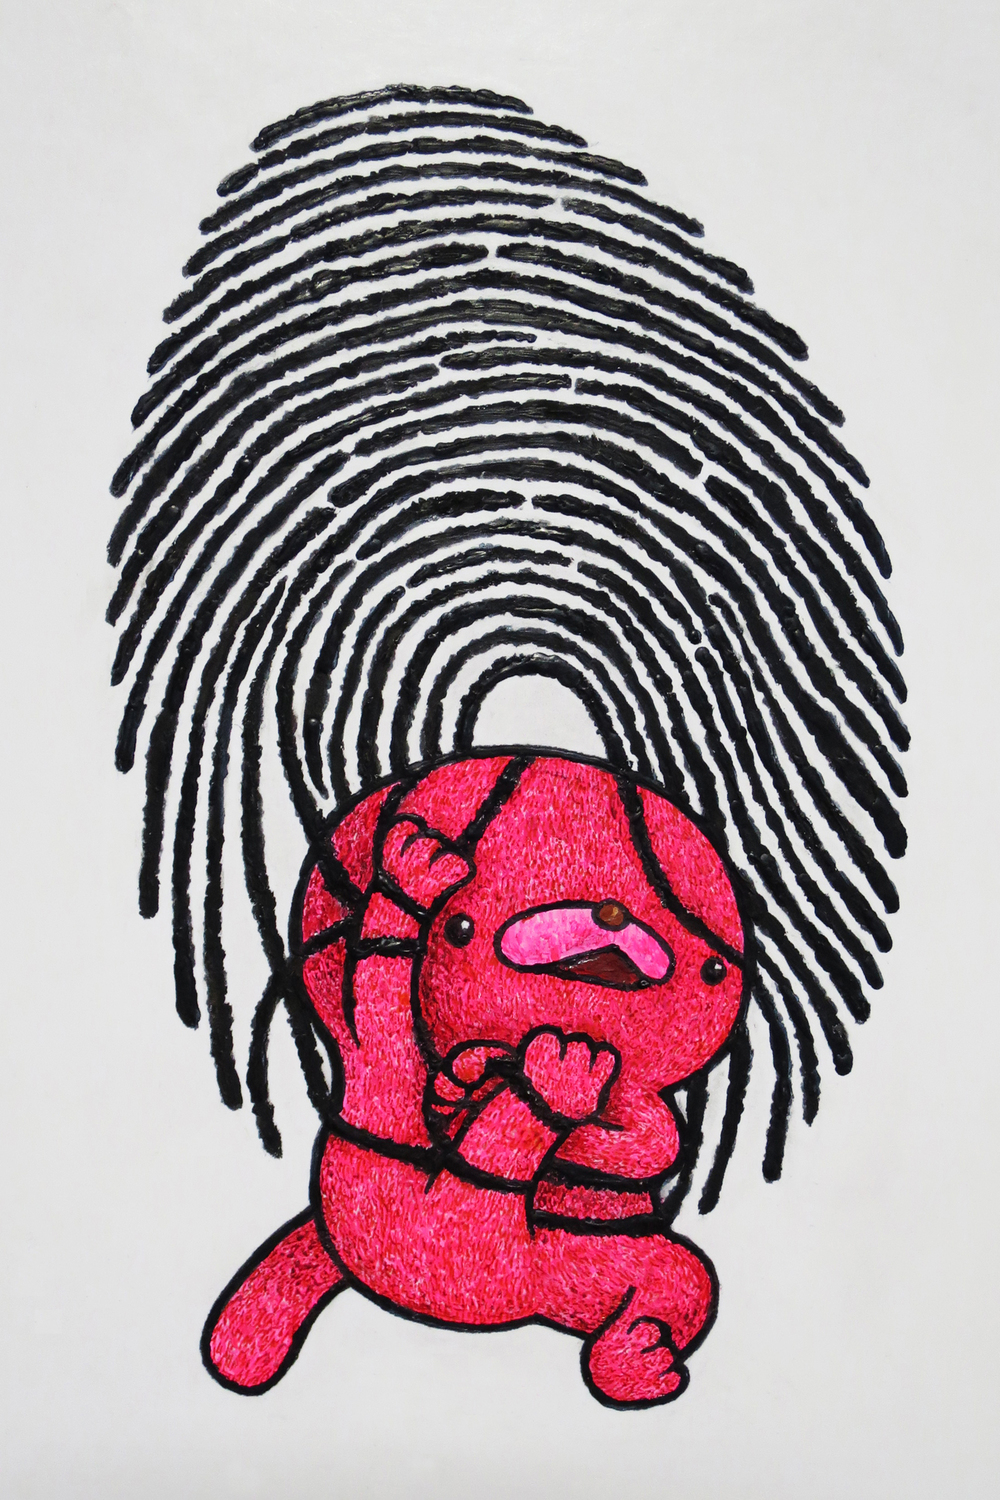 Tangled Fingerprint